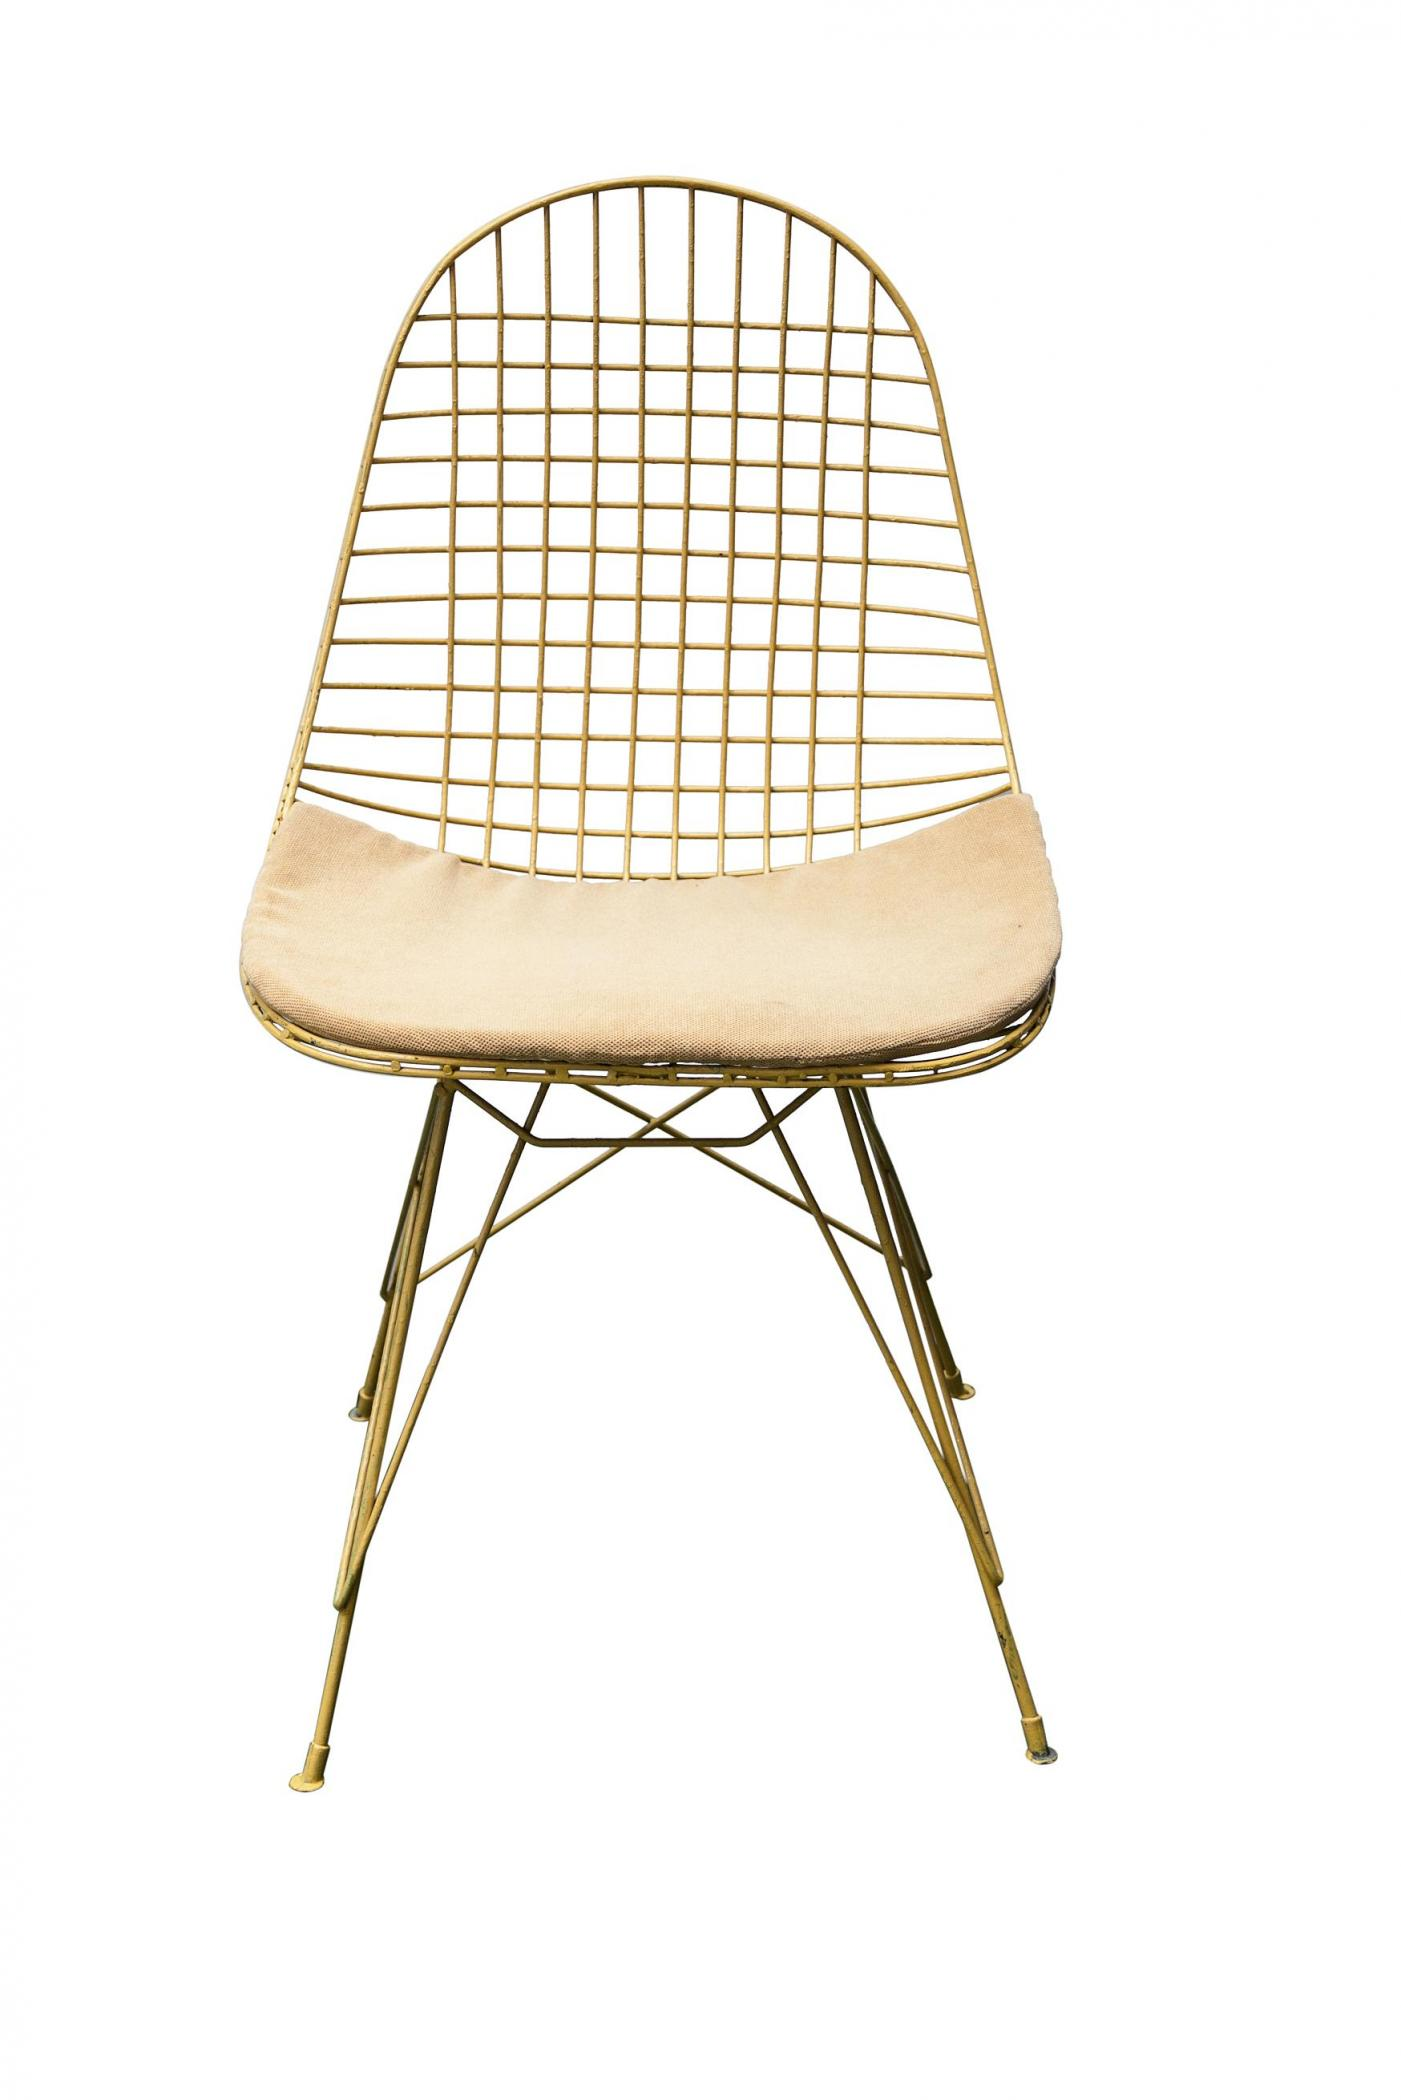 Two Wire Back Garden Chairs In The Style Of Harry Bertoia